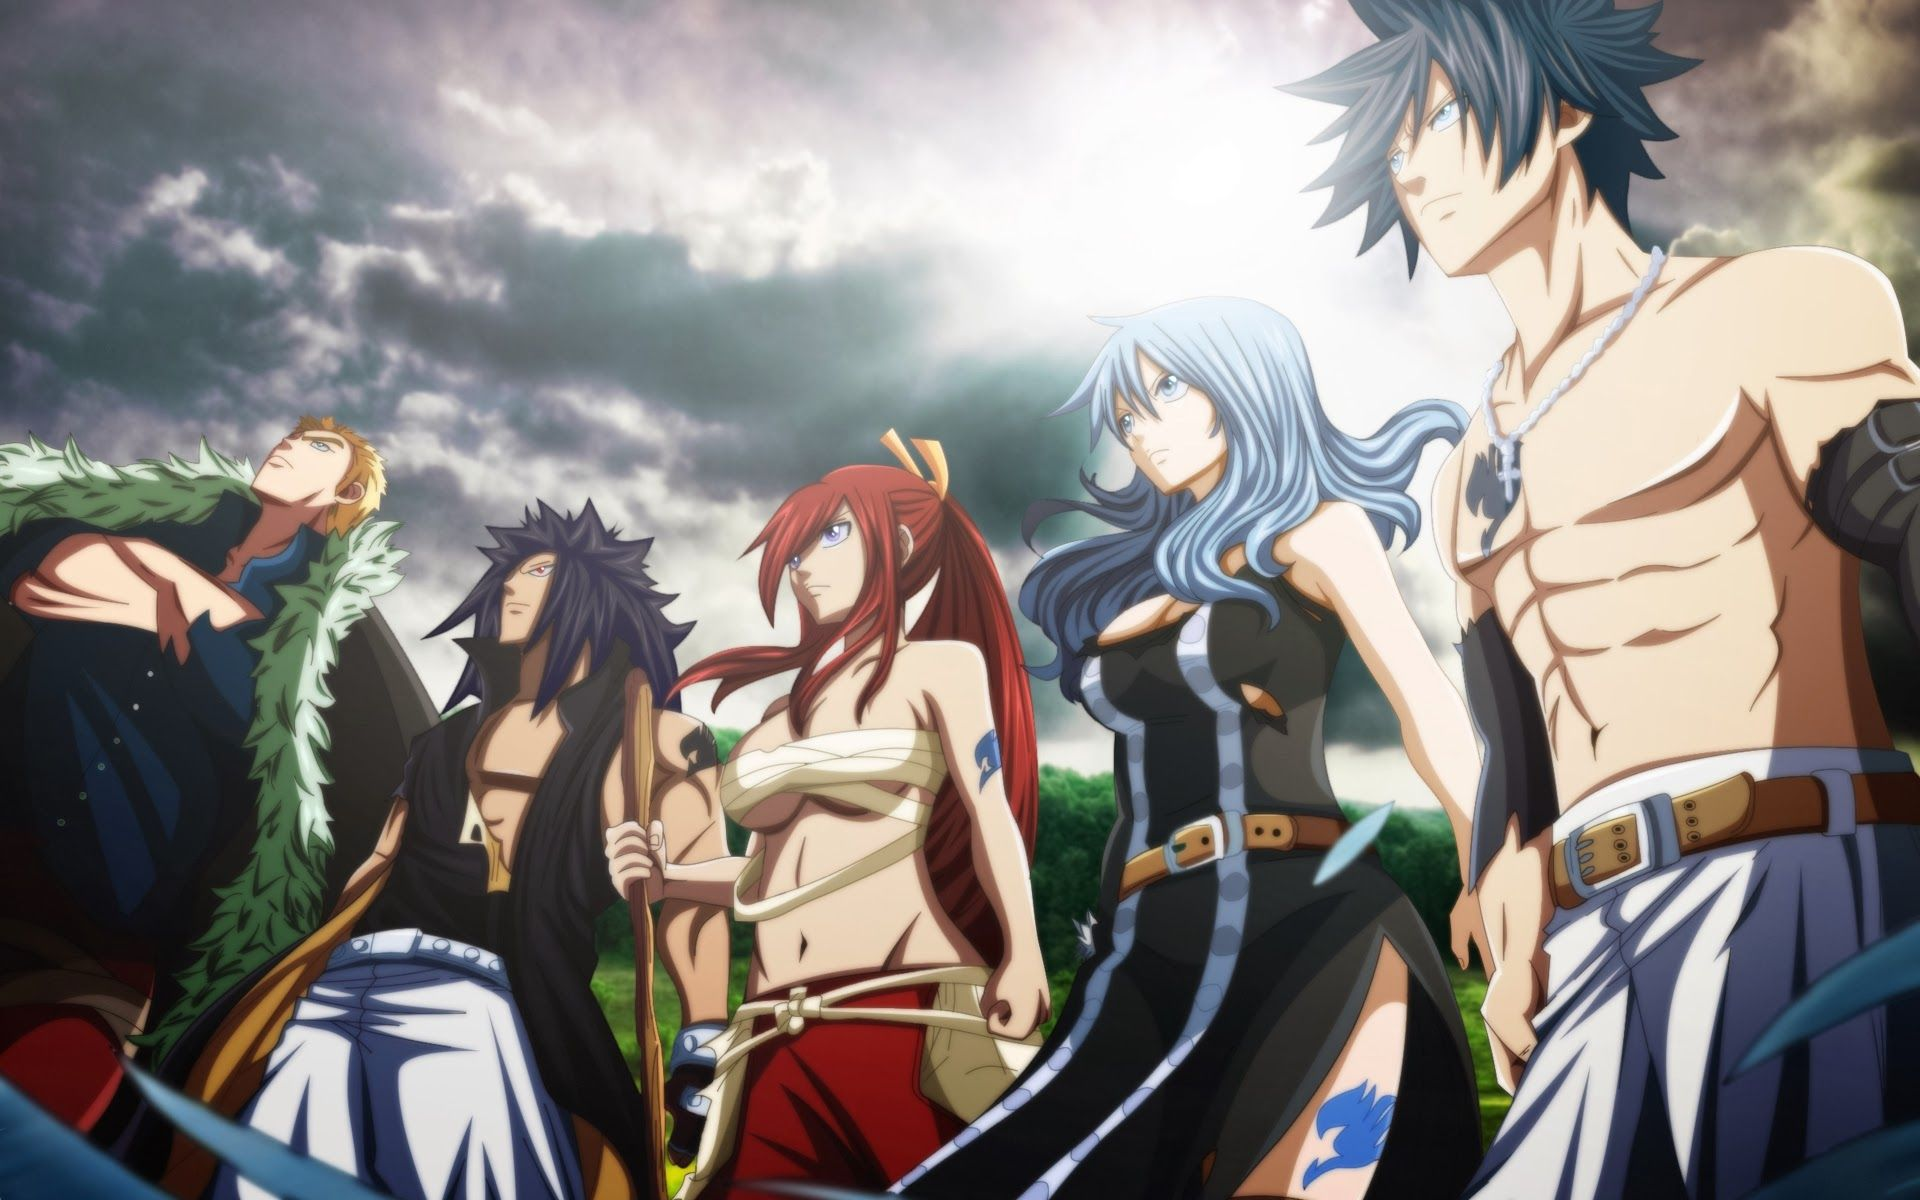 gray fullbuster and juvia lockser | ... gajeel redfox erza ...